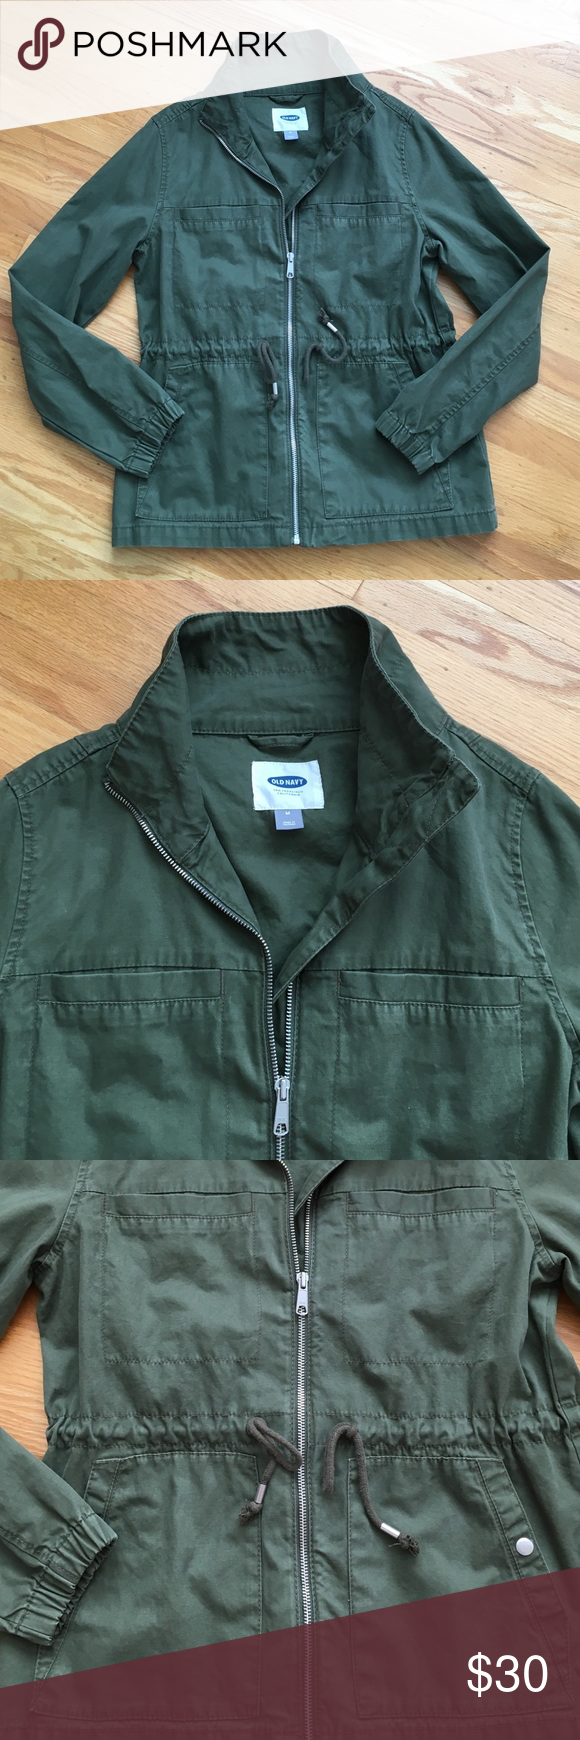 Old Navy Green Jacket Old Navy surplus jacket, green, medium, excellent condition Old Navy Jackets & Coats